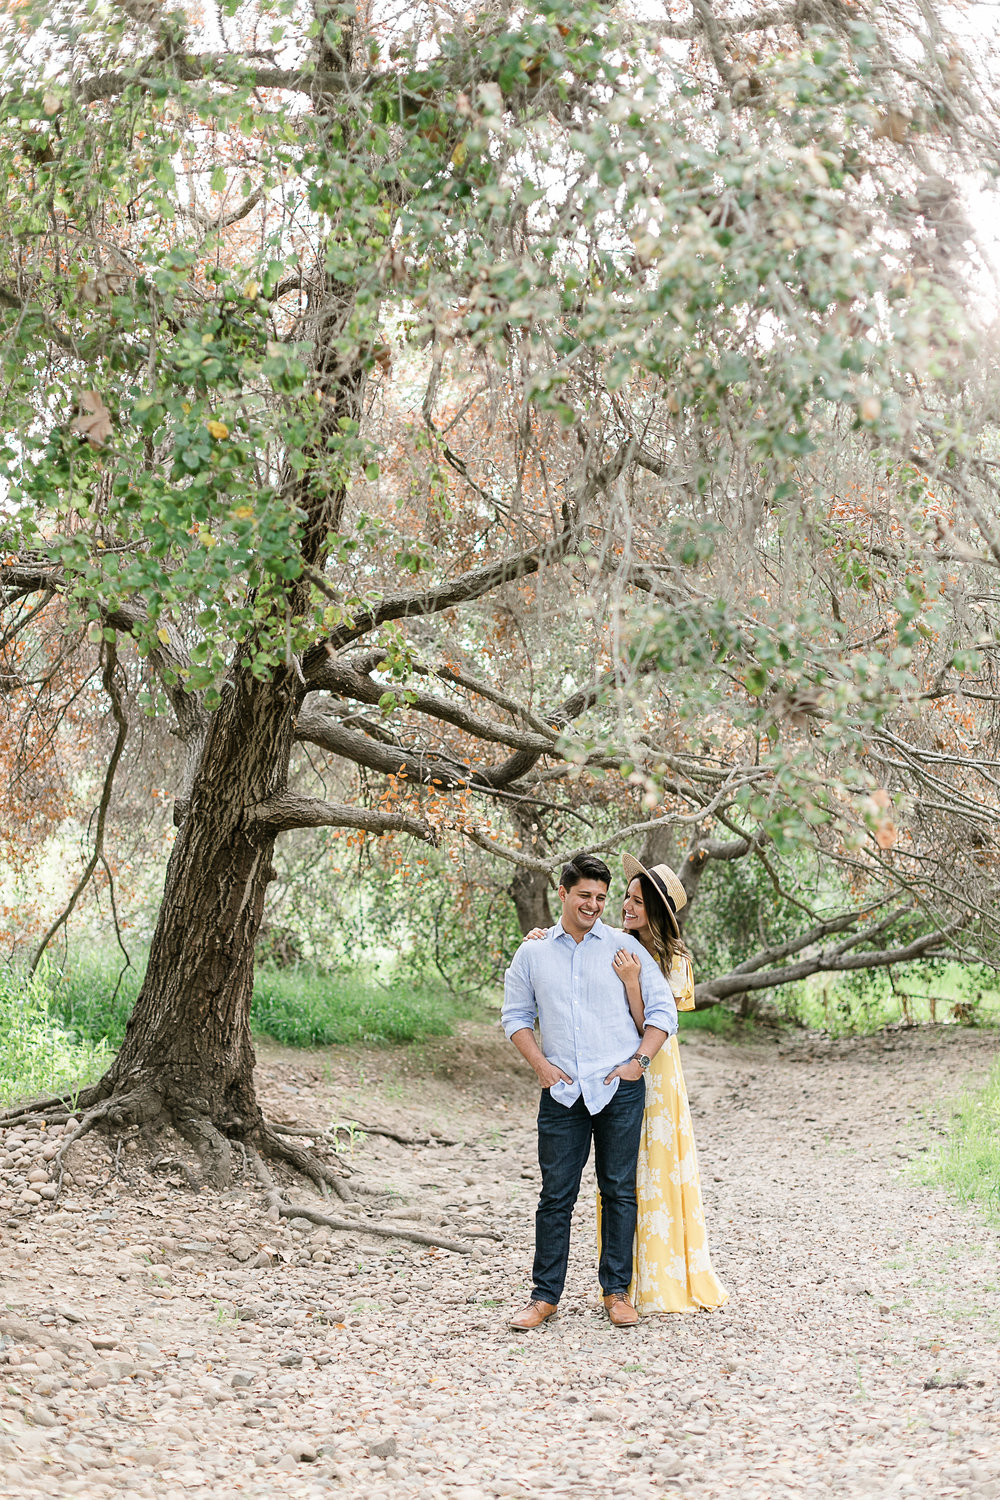 Medina & Arash Los Penasquitos Canyon preserve San Diego Engagement Session-11.jpg